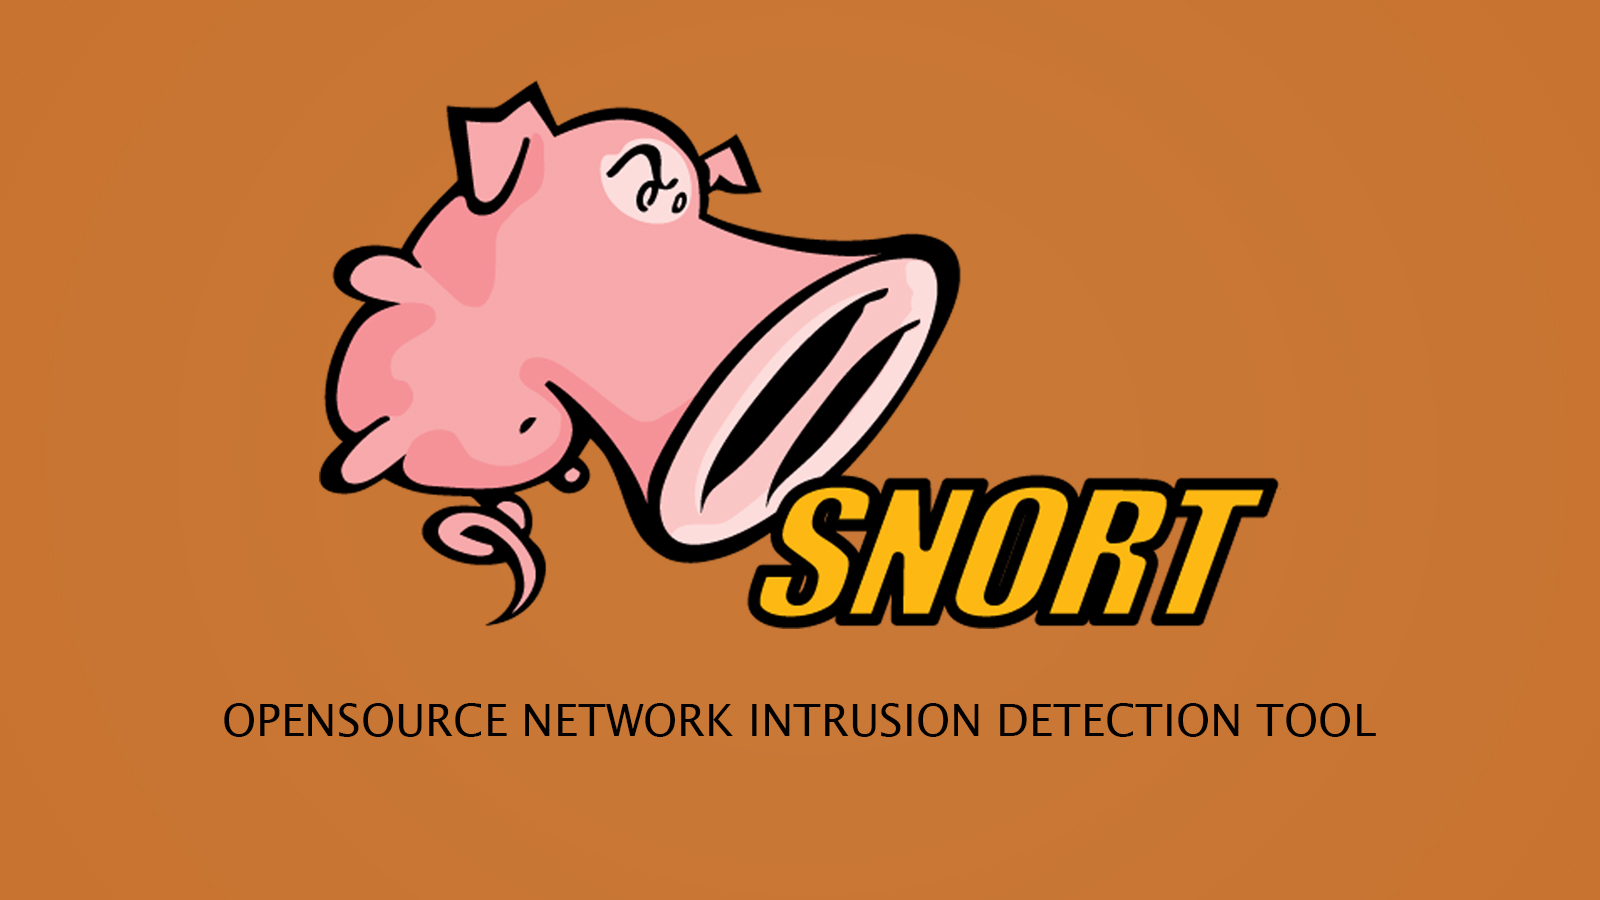 win snort 37 the snort configuration file snort uses a configuration file at startup time a sample configuration file snortconf is included in the snort distribution.